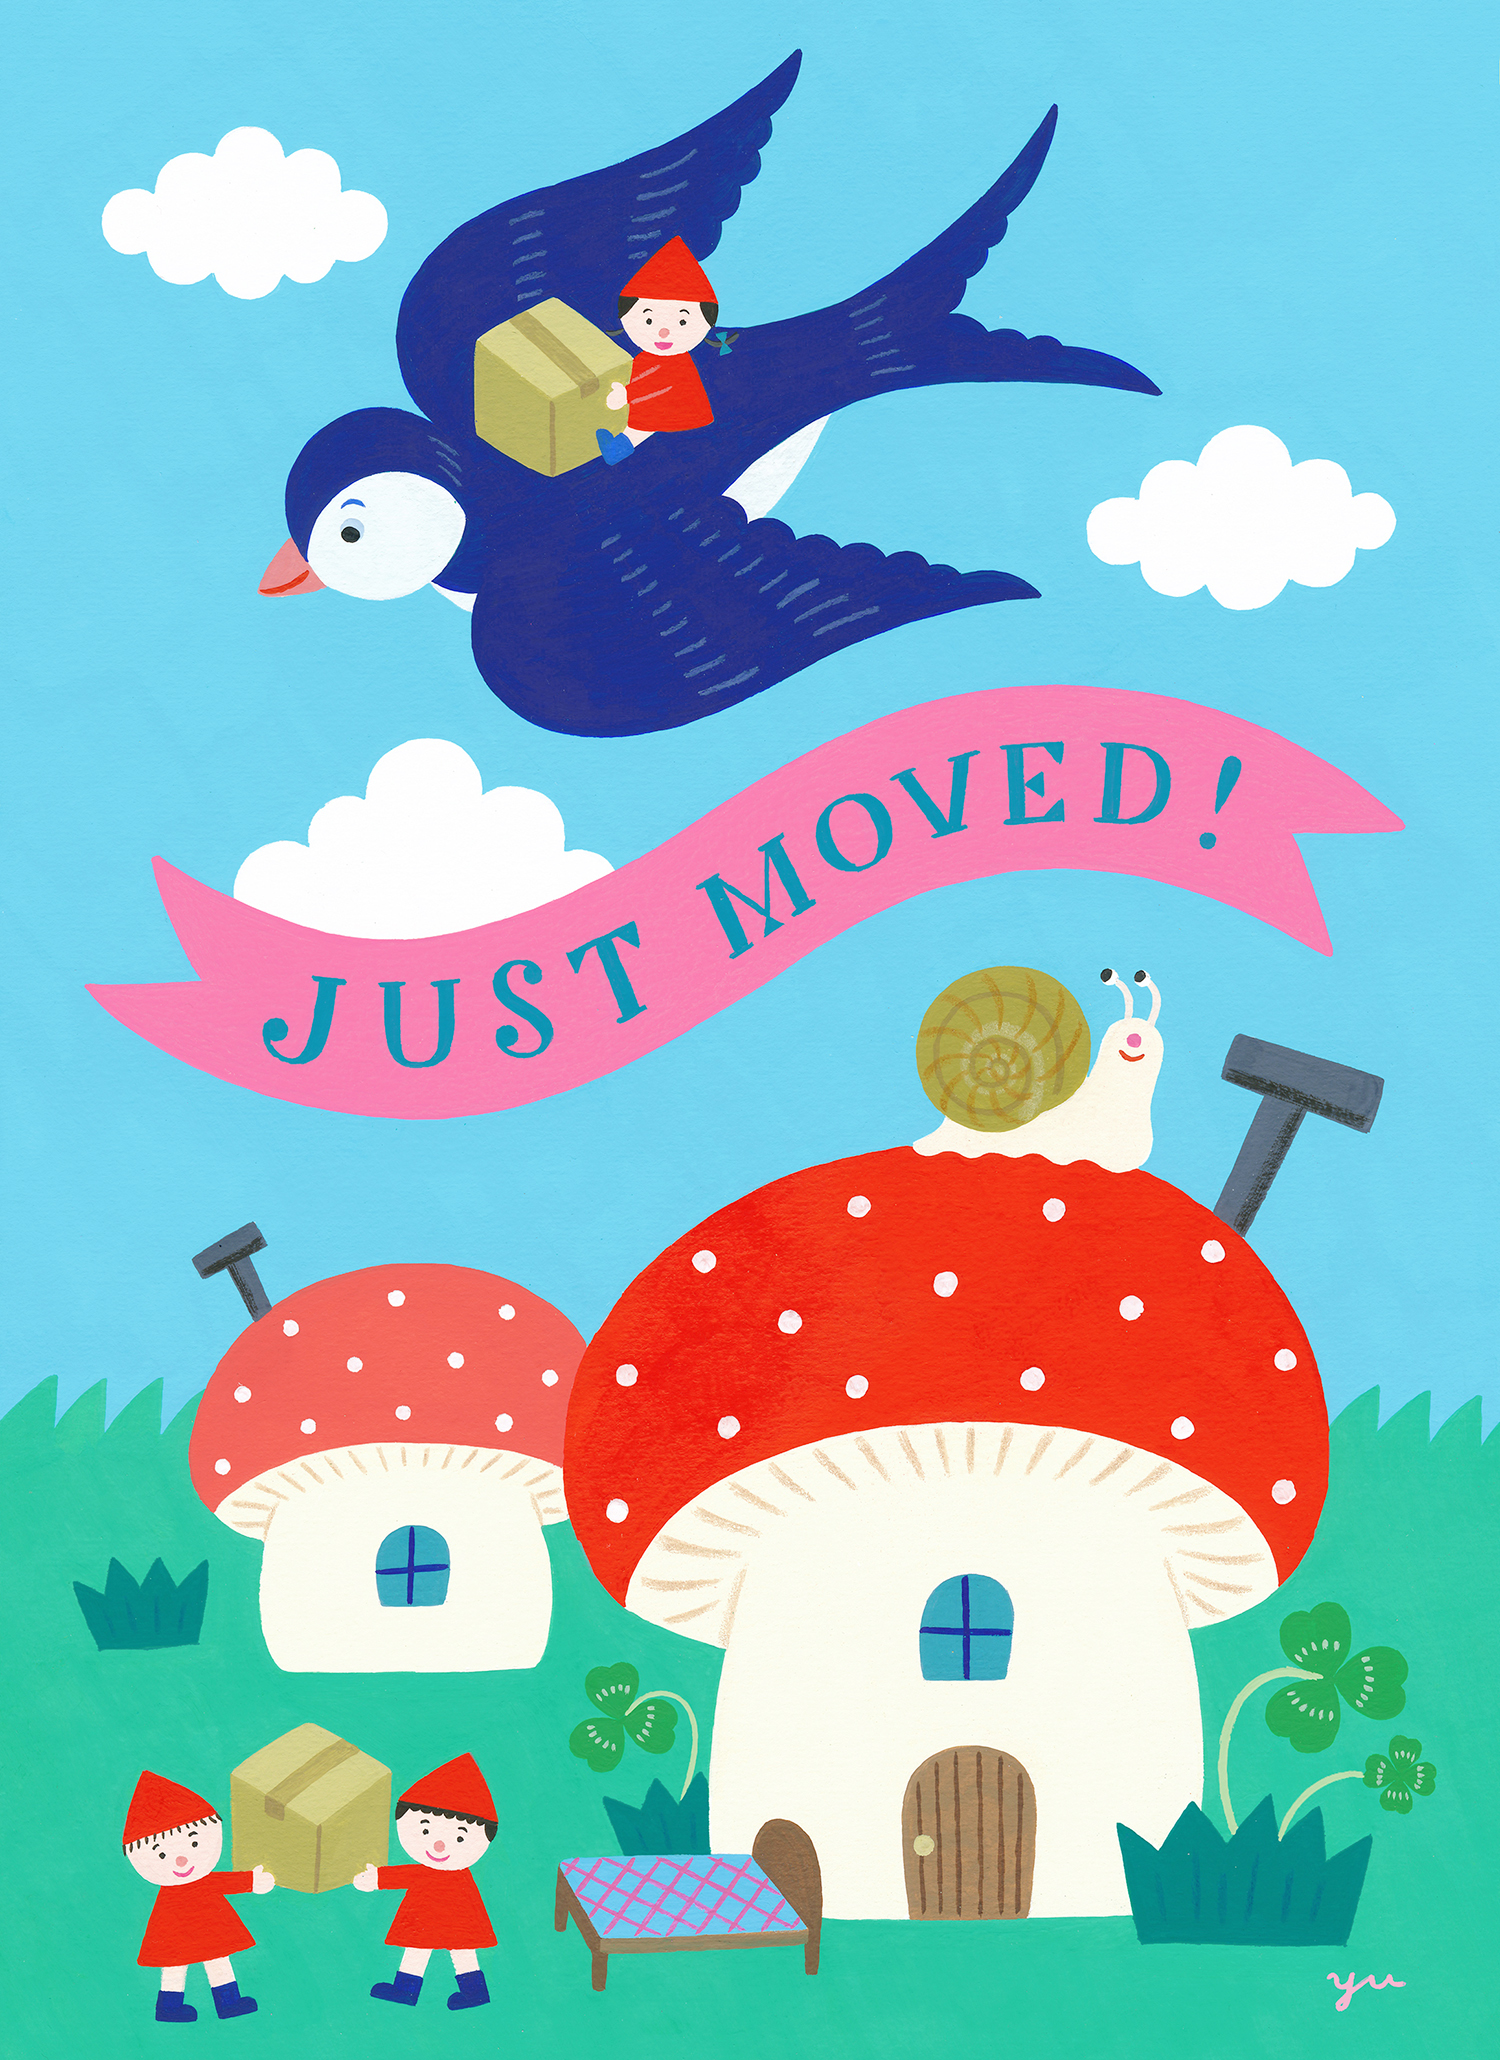 「JUST MOVED! 転居のおしらせ」オリジナル 2021